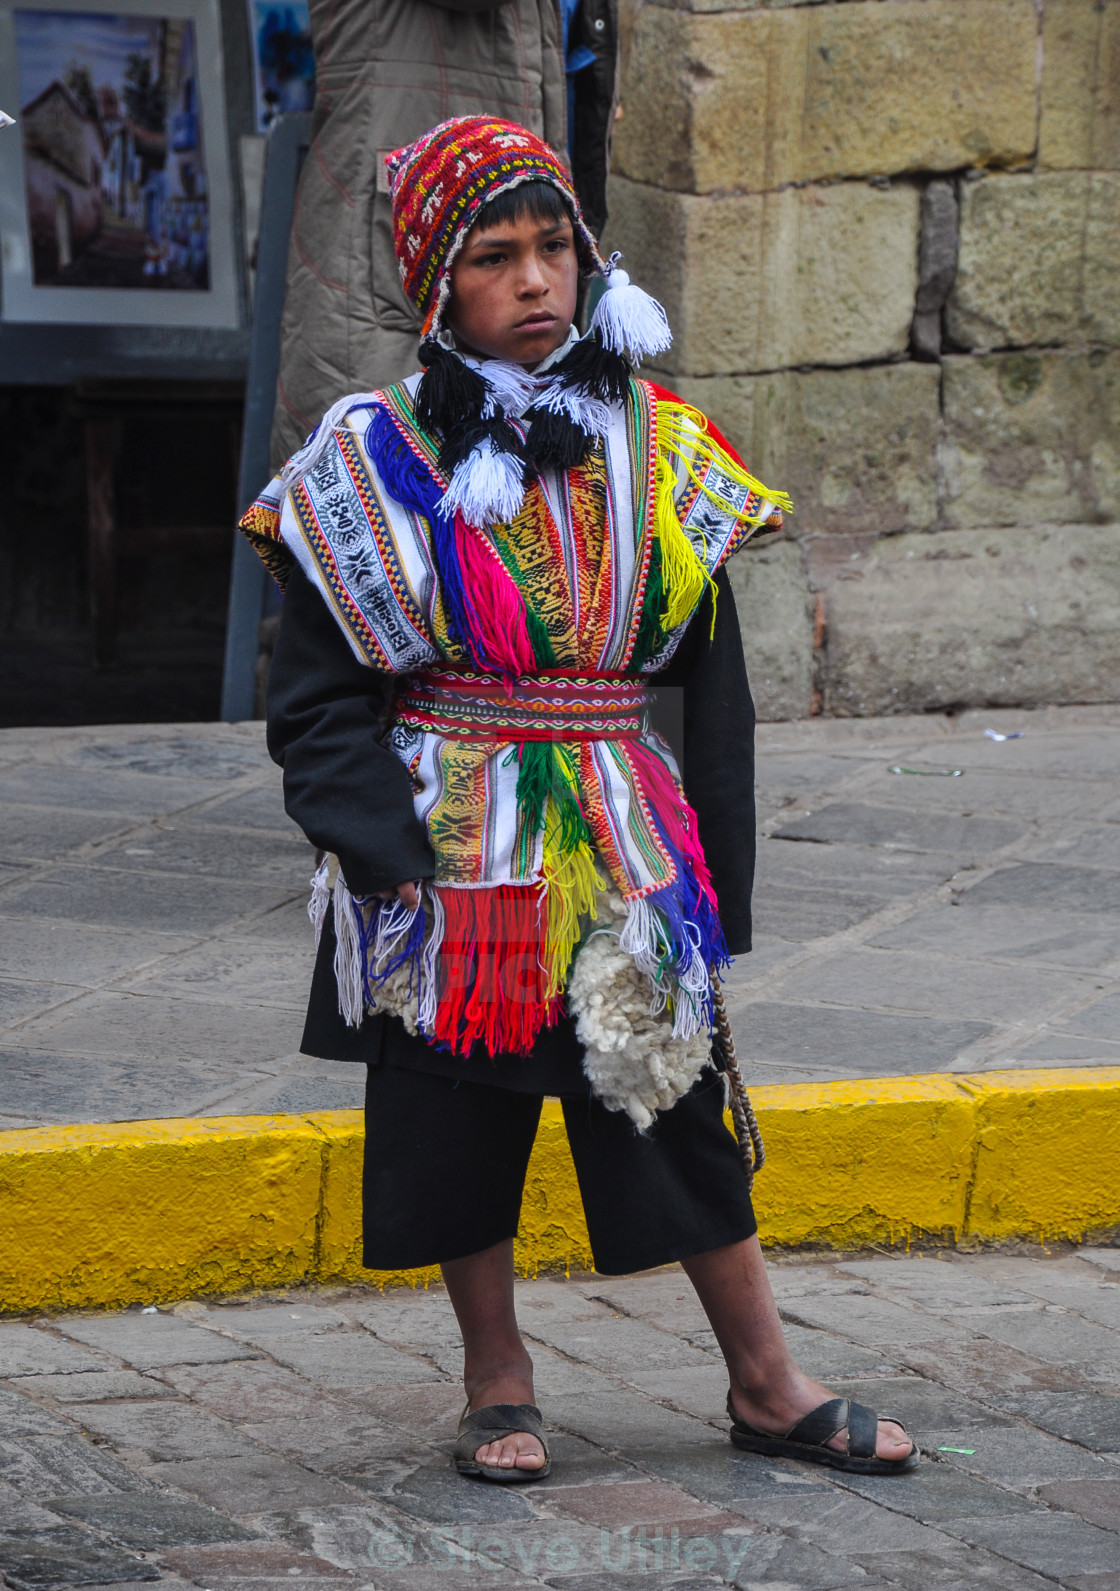 Little Inca boy - License for £6.20 on Picfair